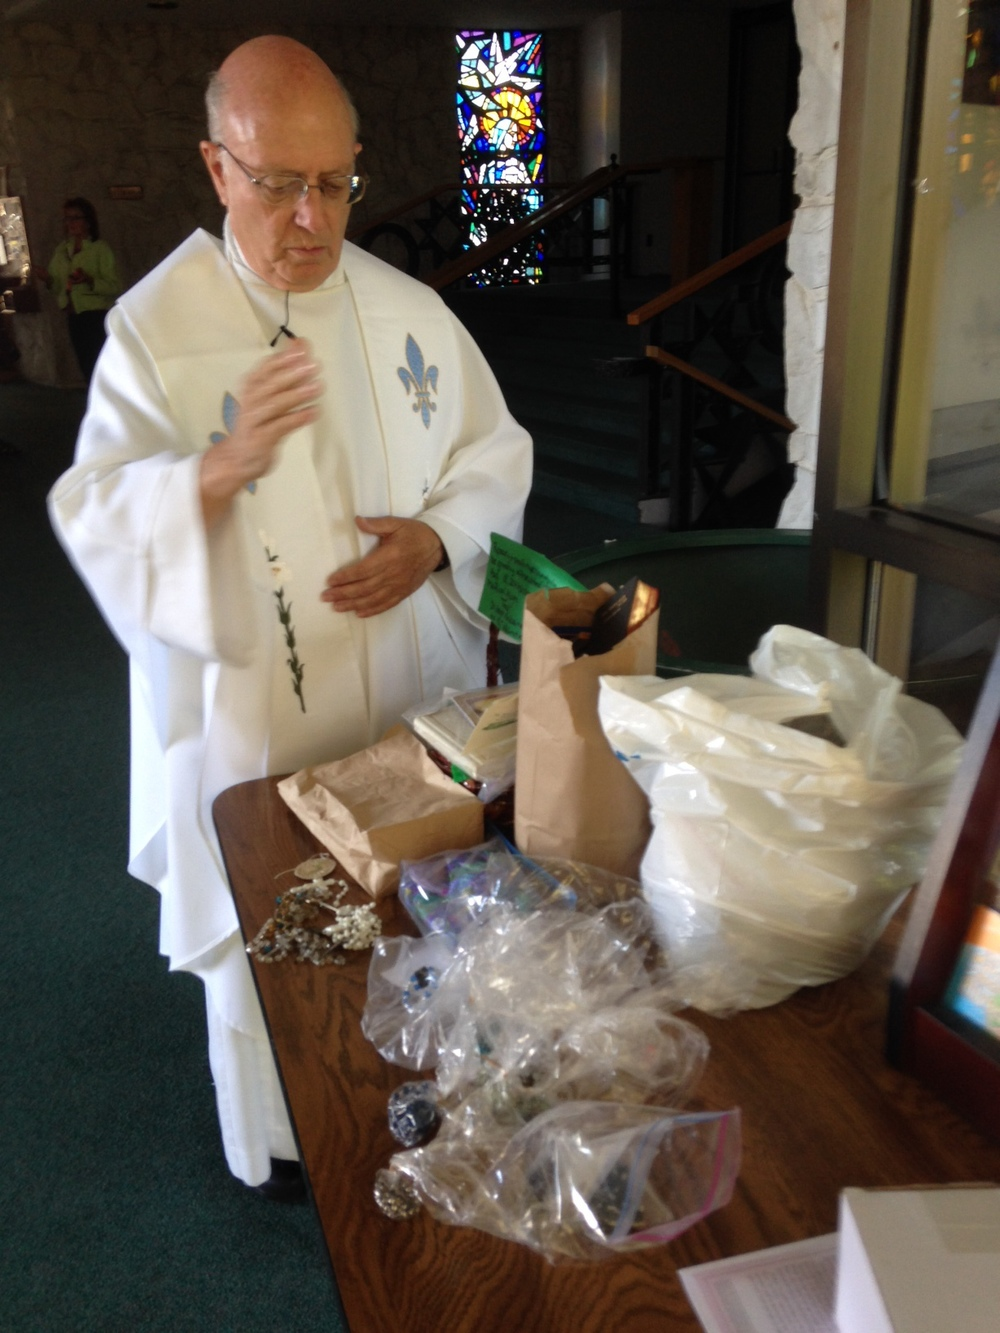 Here is Father Thomas Haffey at St. Ann's Parish, blessing rosaries and sacramentals that have been donated by so many people. Liam and I are going to share these with all of the members of the training.